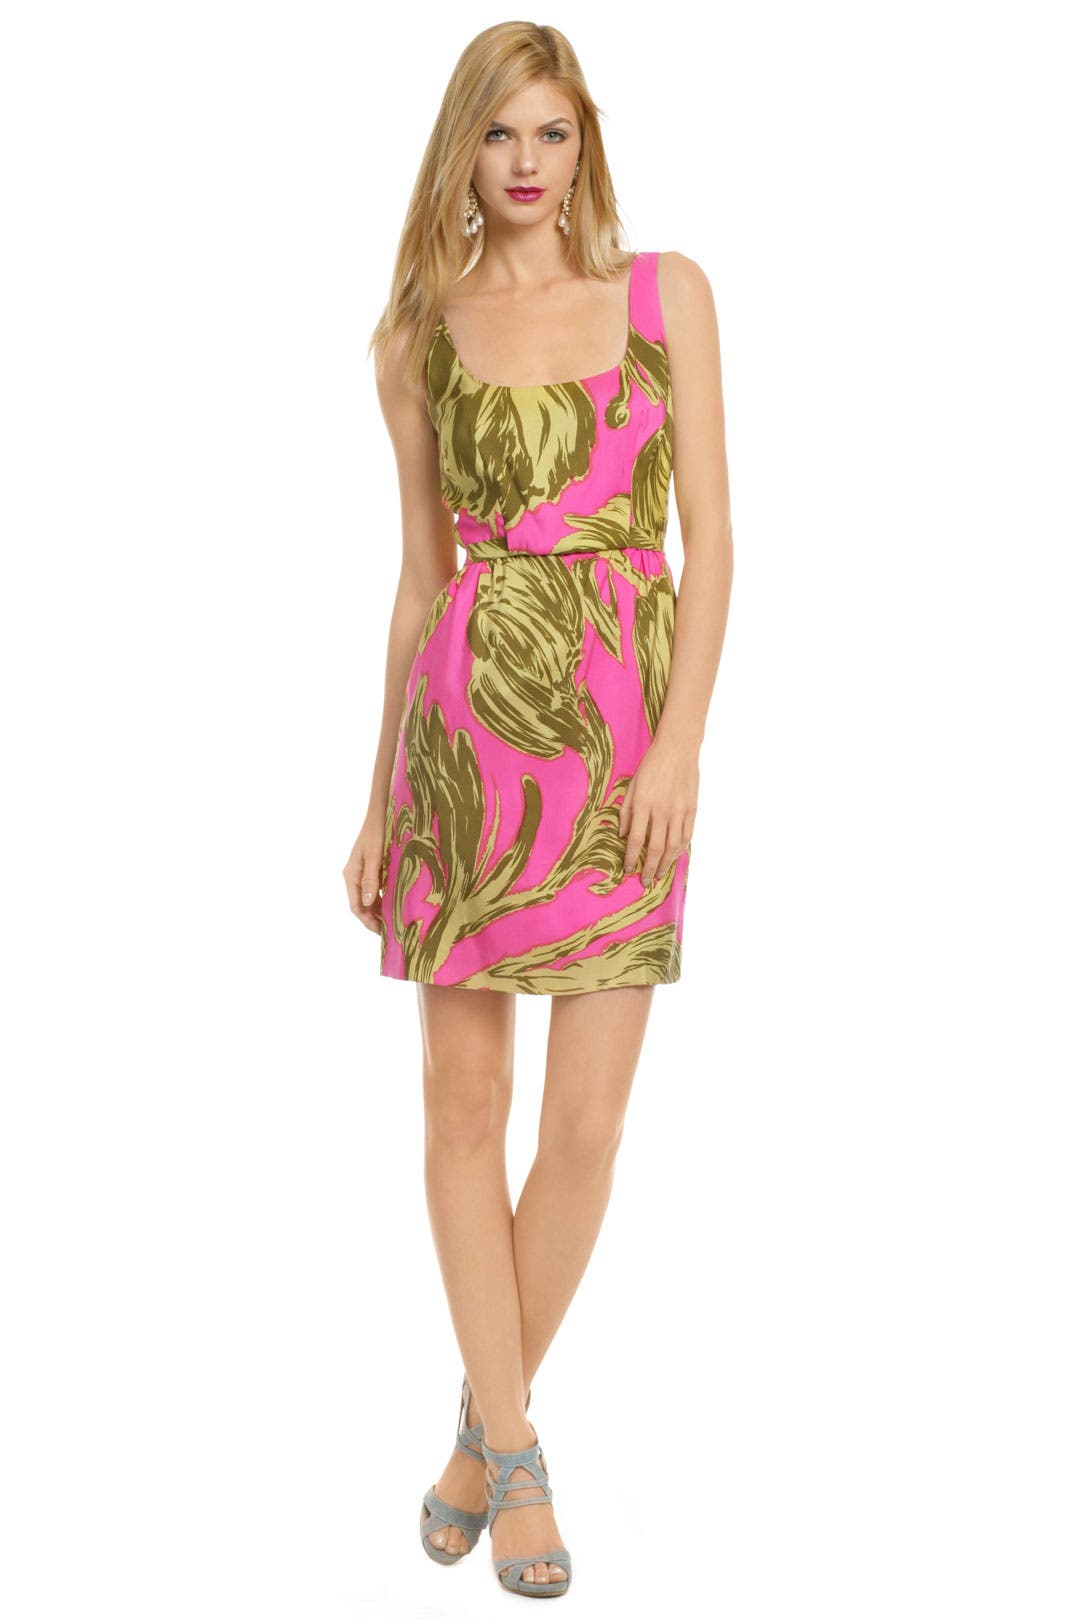 Neon Pink Punch Dress by Milly